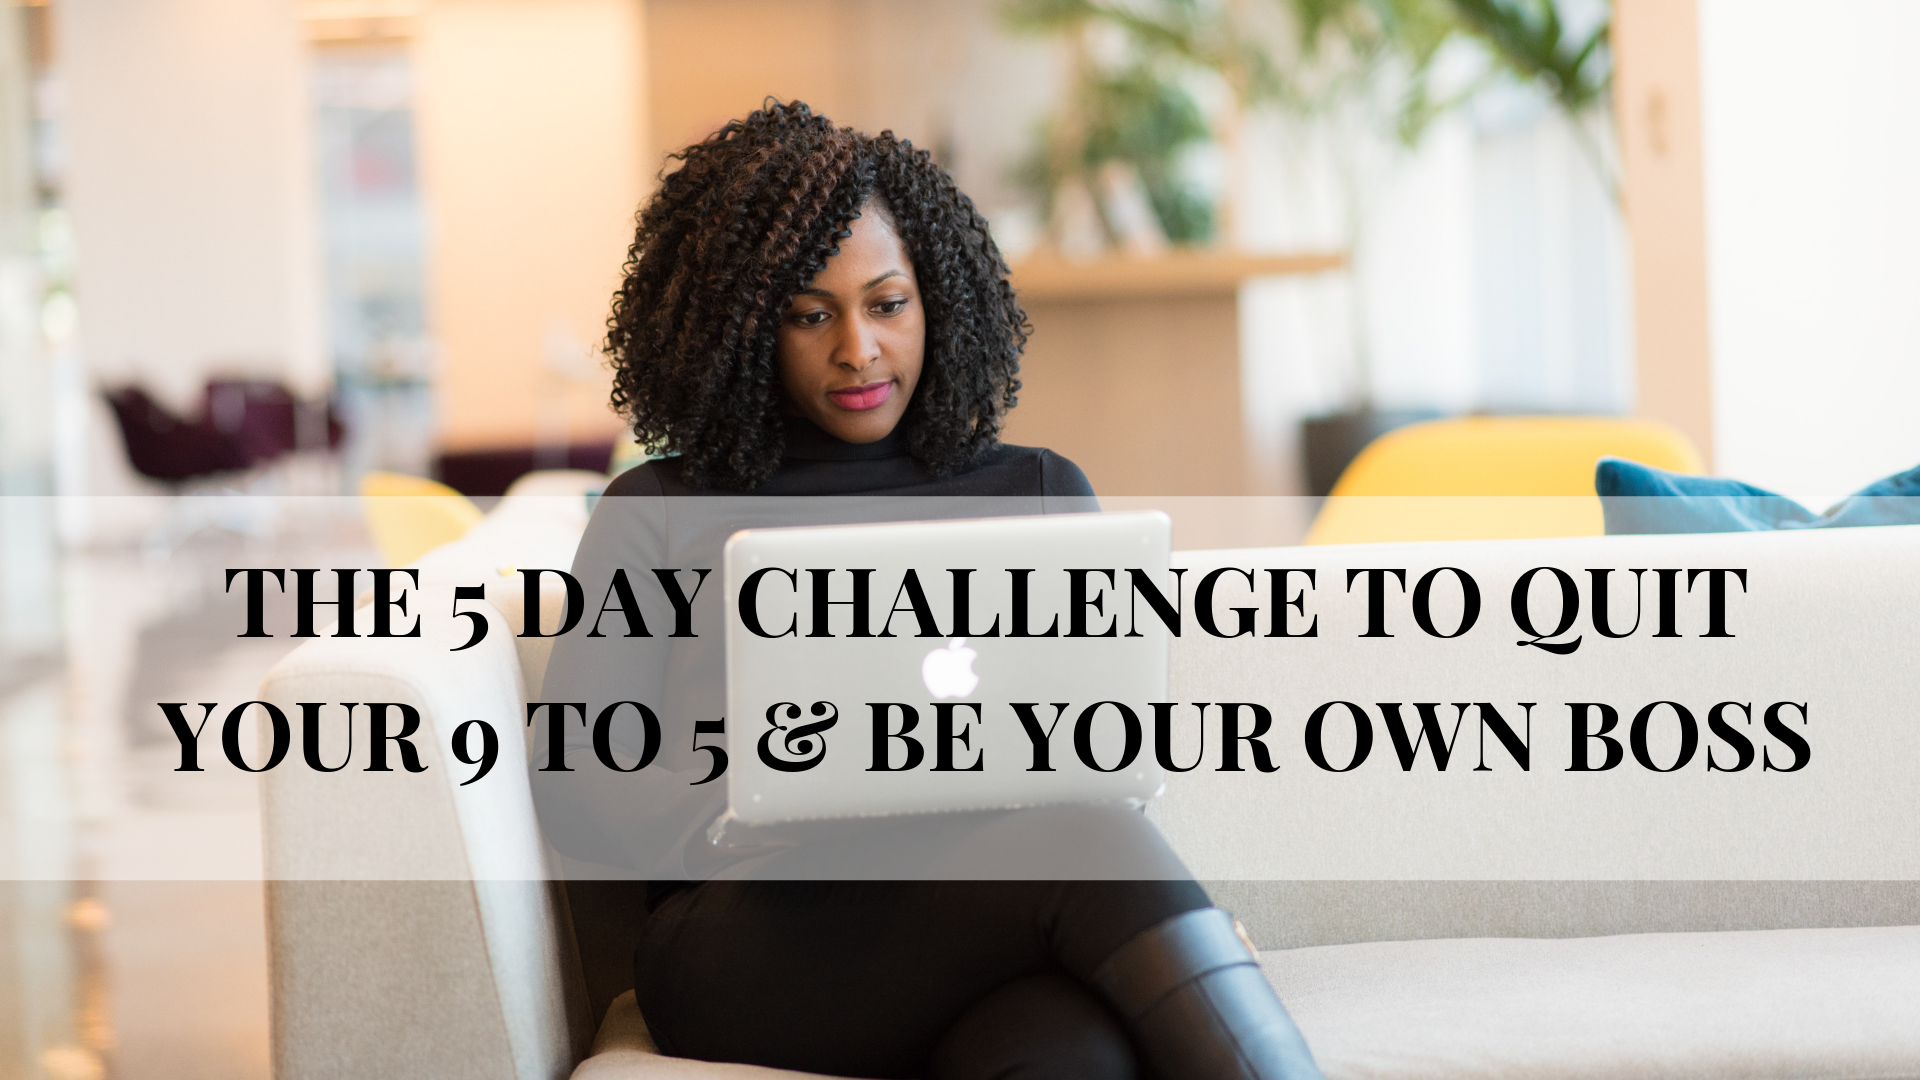 THE 5 DAY CHALLENGE TO QUITE YOUR 9 TO 5 & BE YOUR OWN BOSS (7).png